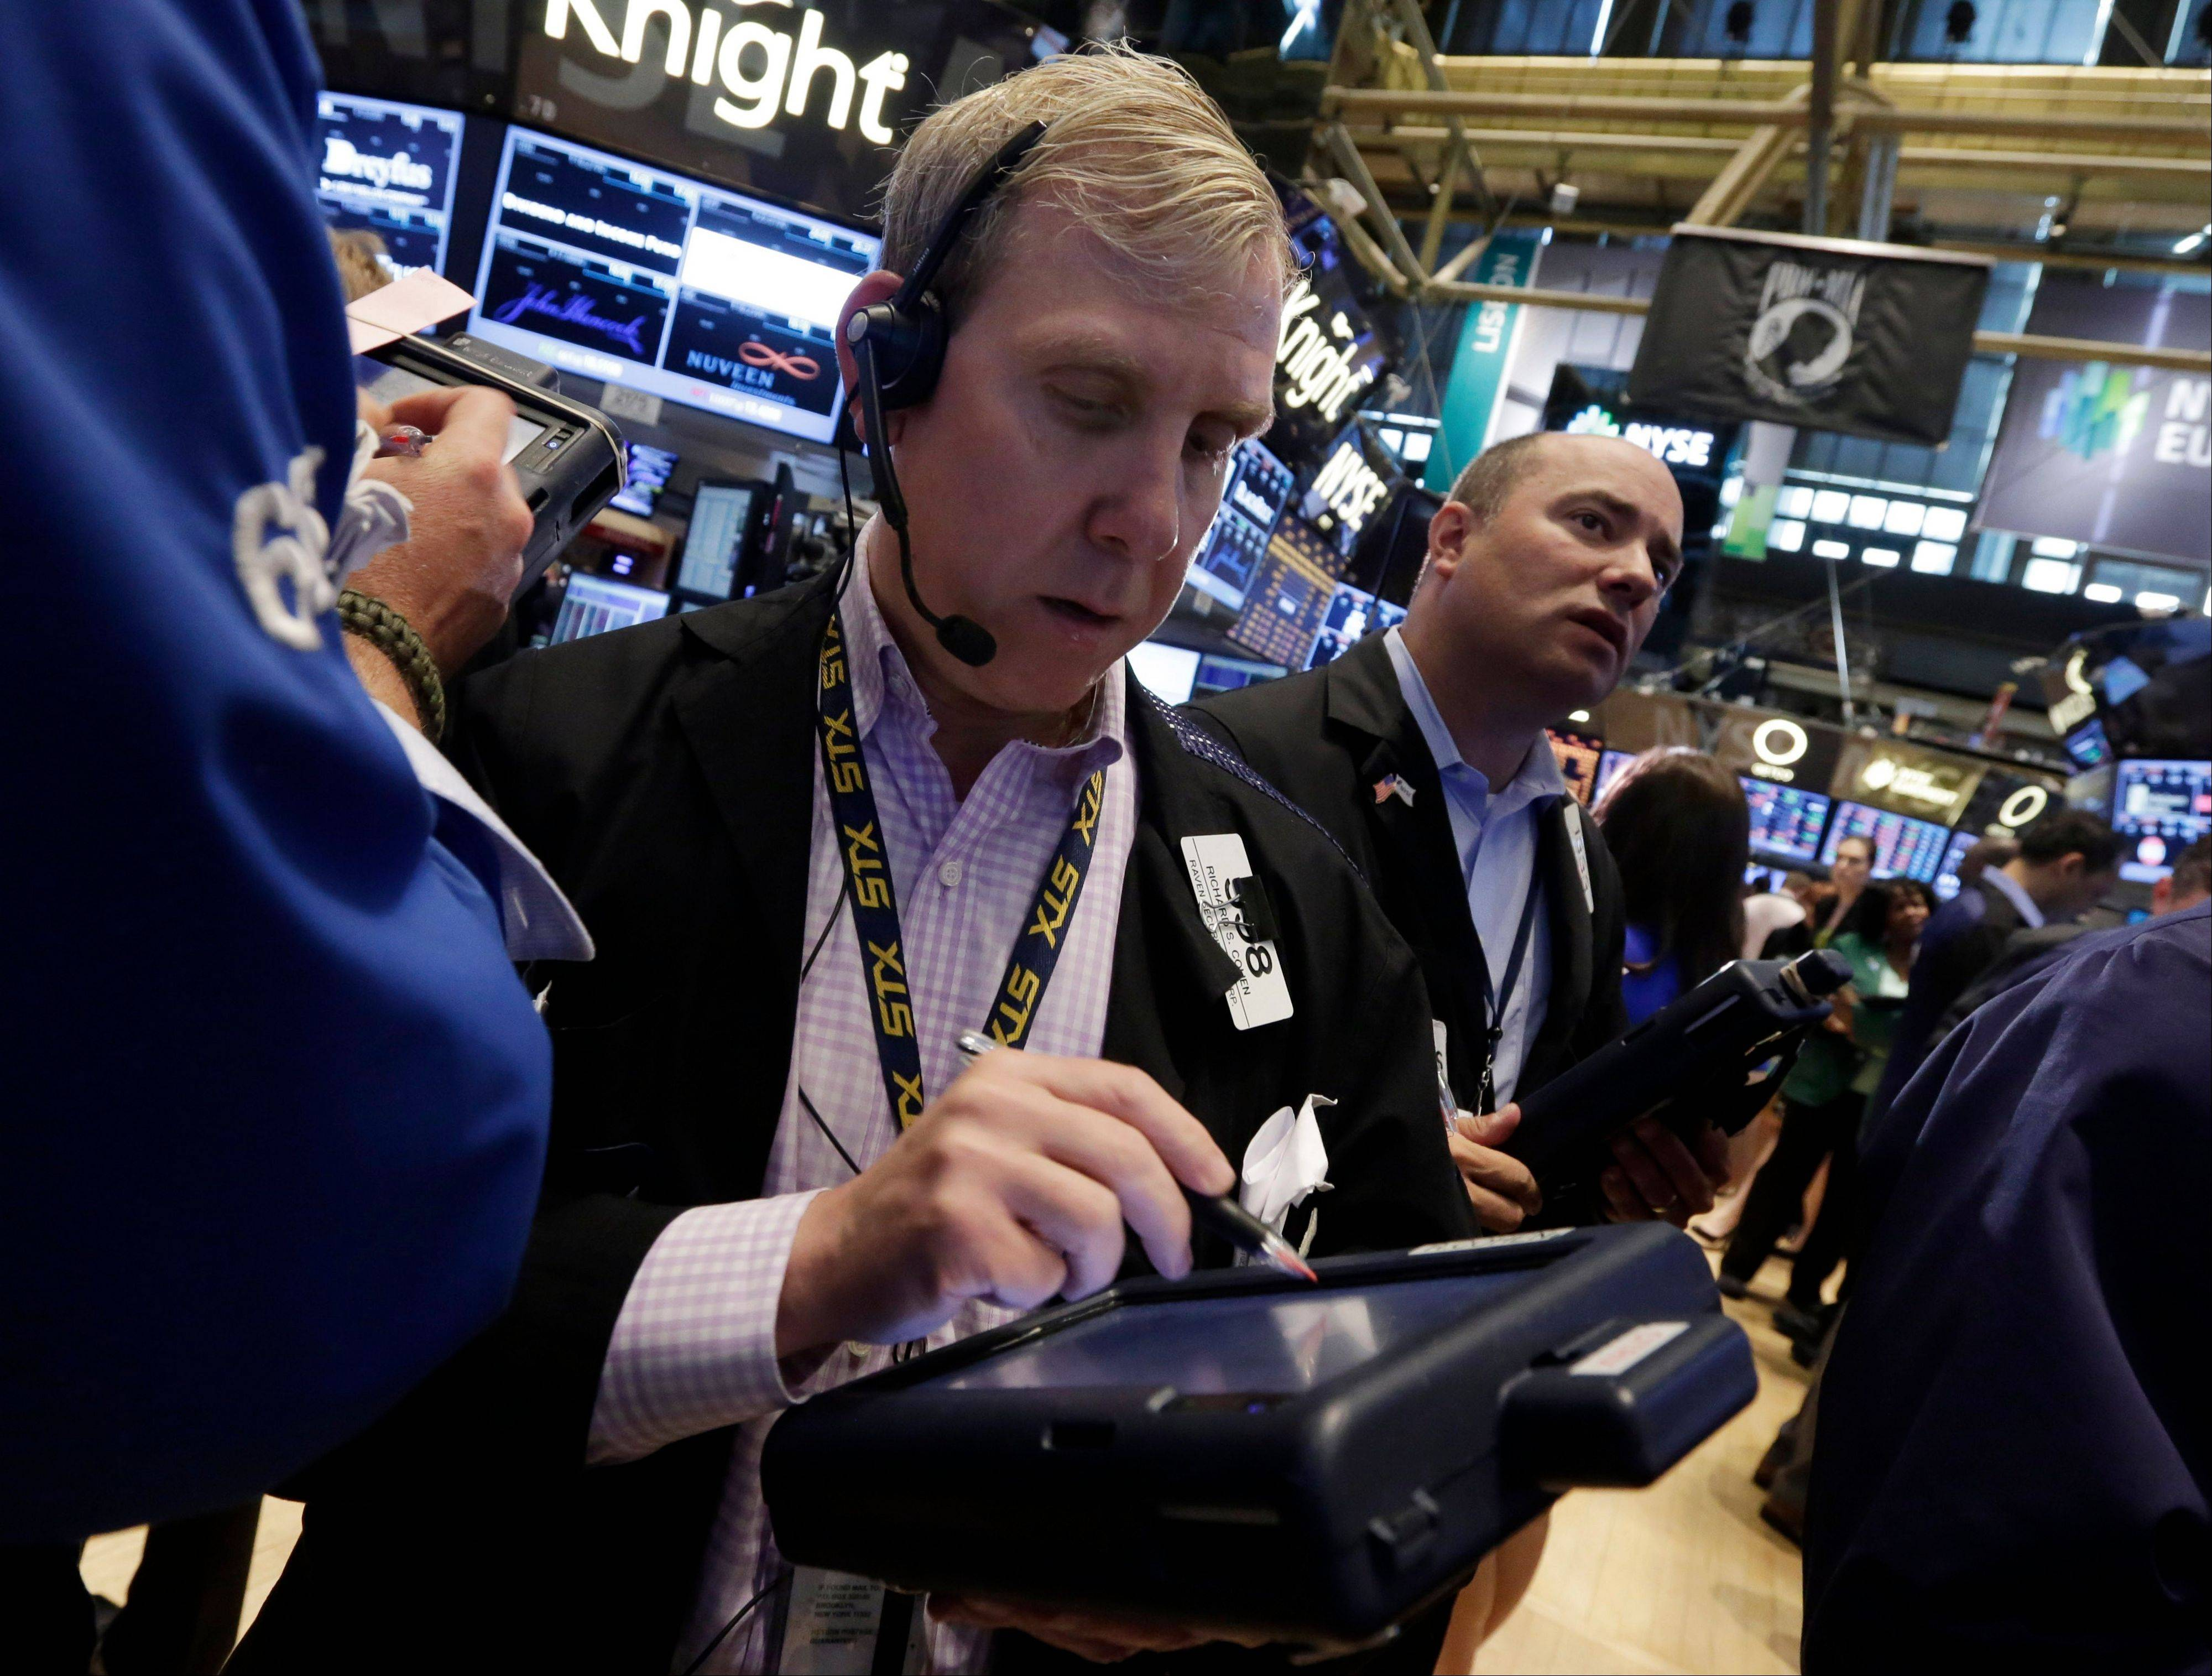 U.S. stocks rose, with the Standard & Poor's 500 Index erasing earlier losses to snap a two-day losing streak, as investors weighed the Federal Reserve's stimulus plans before a report on employment growth tomorrow.